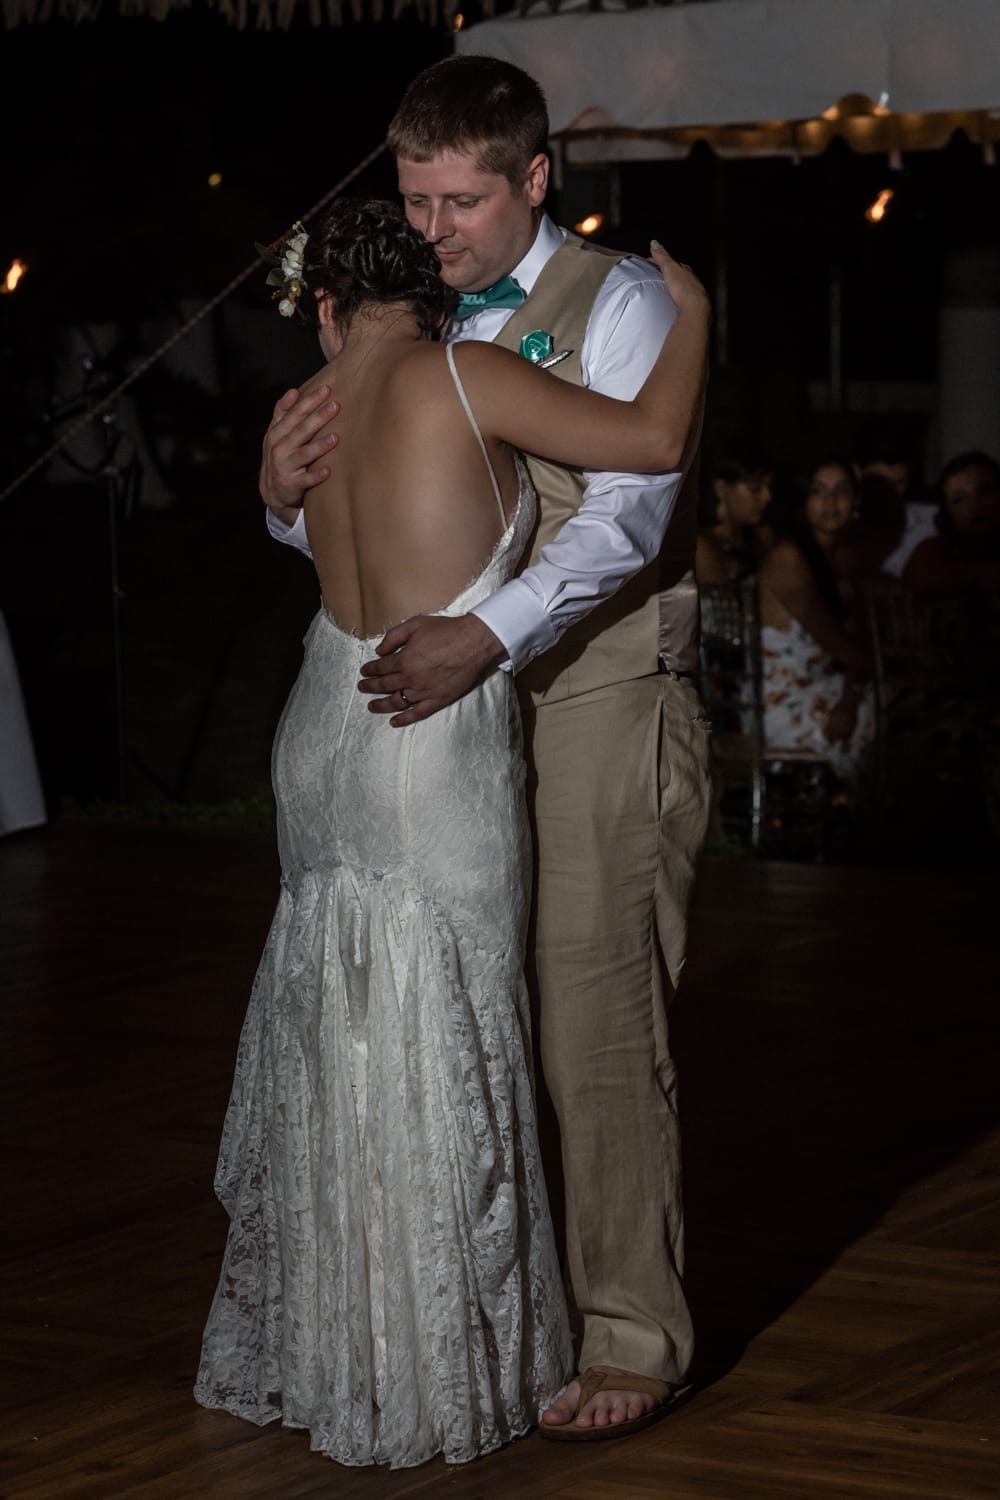 Bride and groom celebrate their wedding with their first dance.